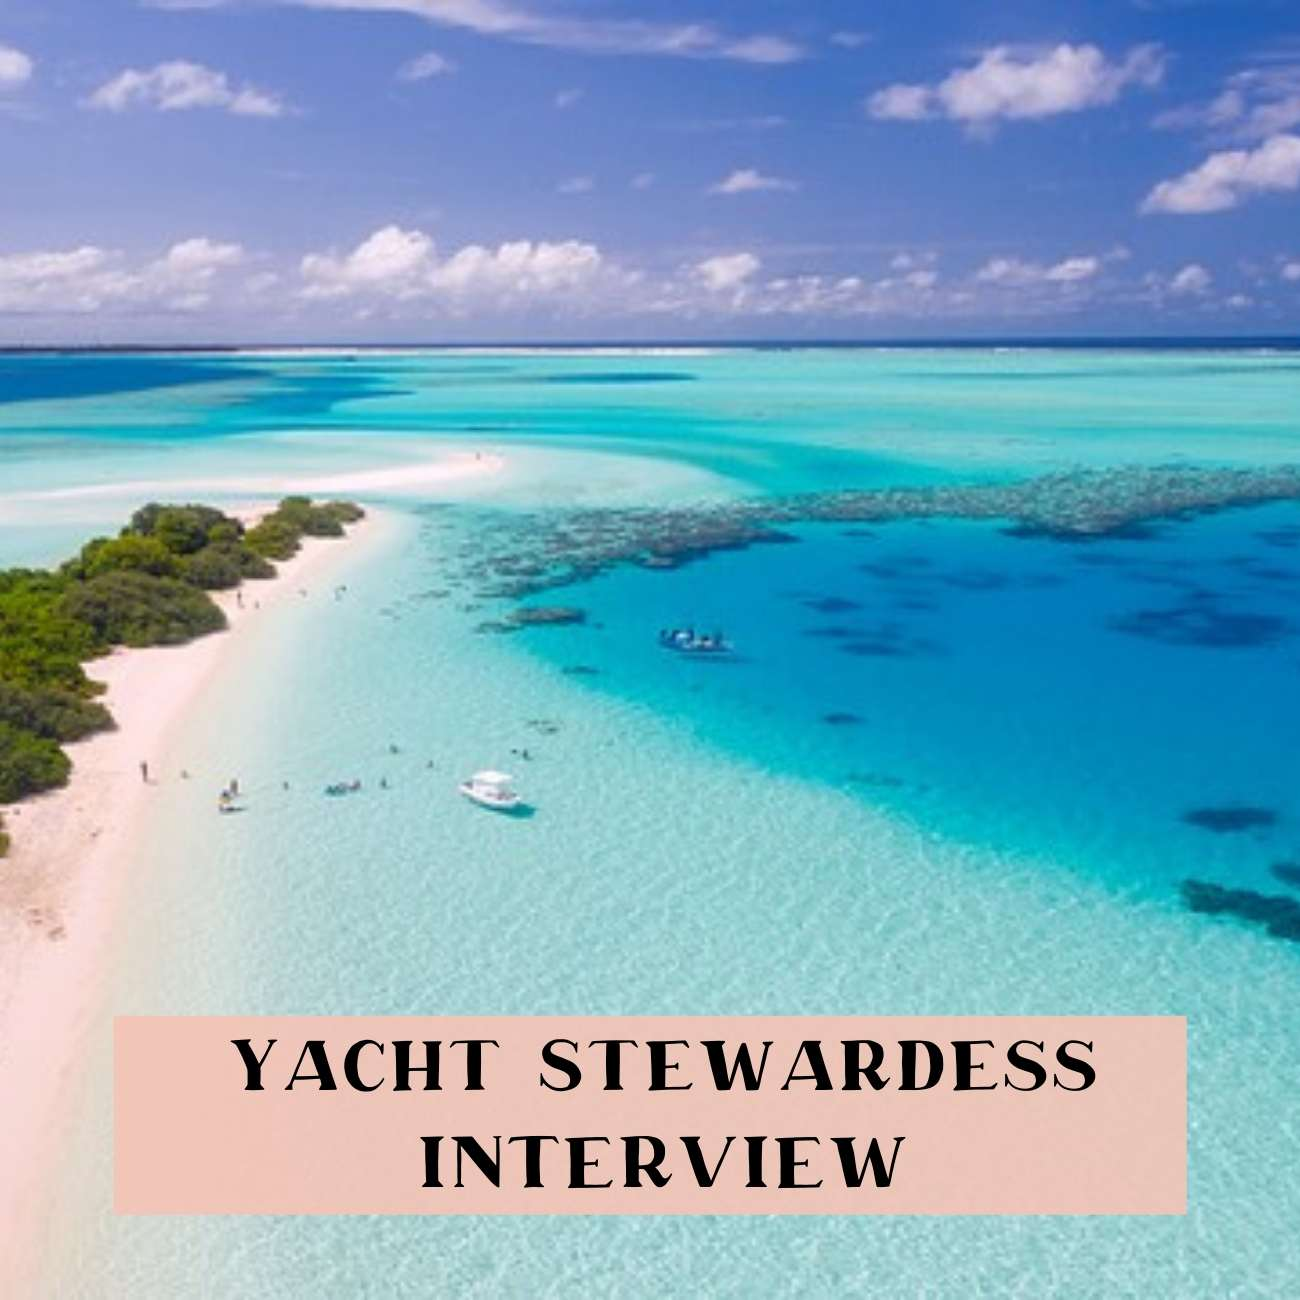 Interview with a yacht stew